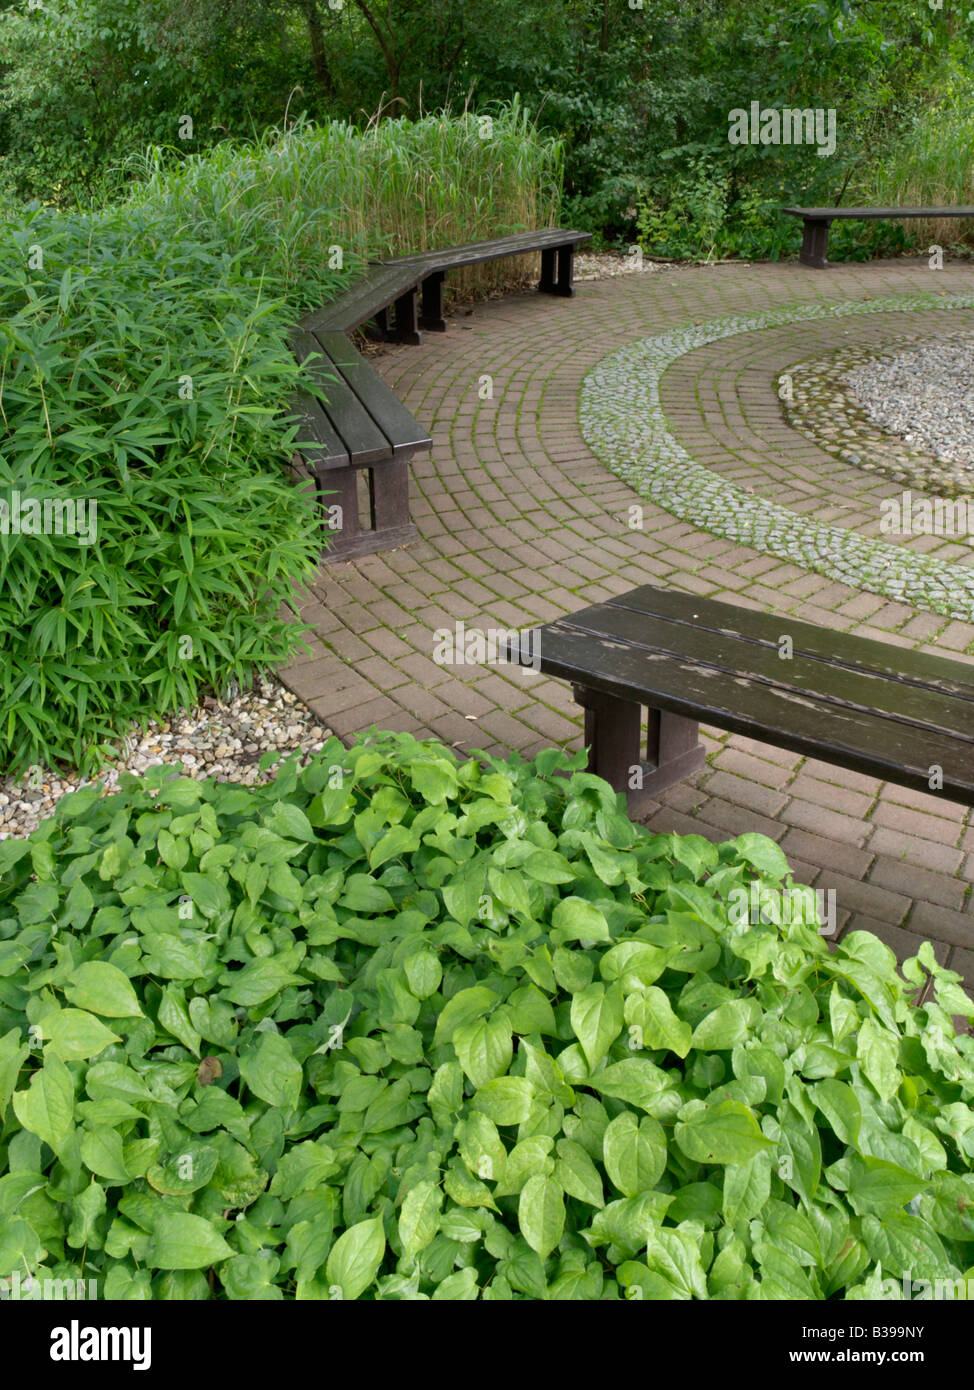 Benches in a shady garden - Stock Image